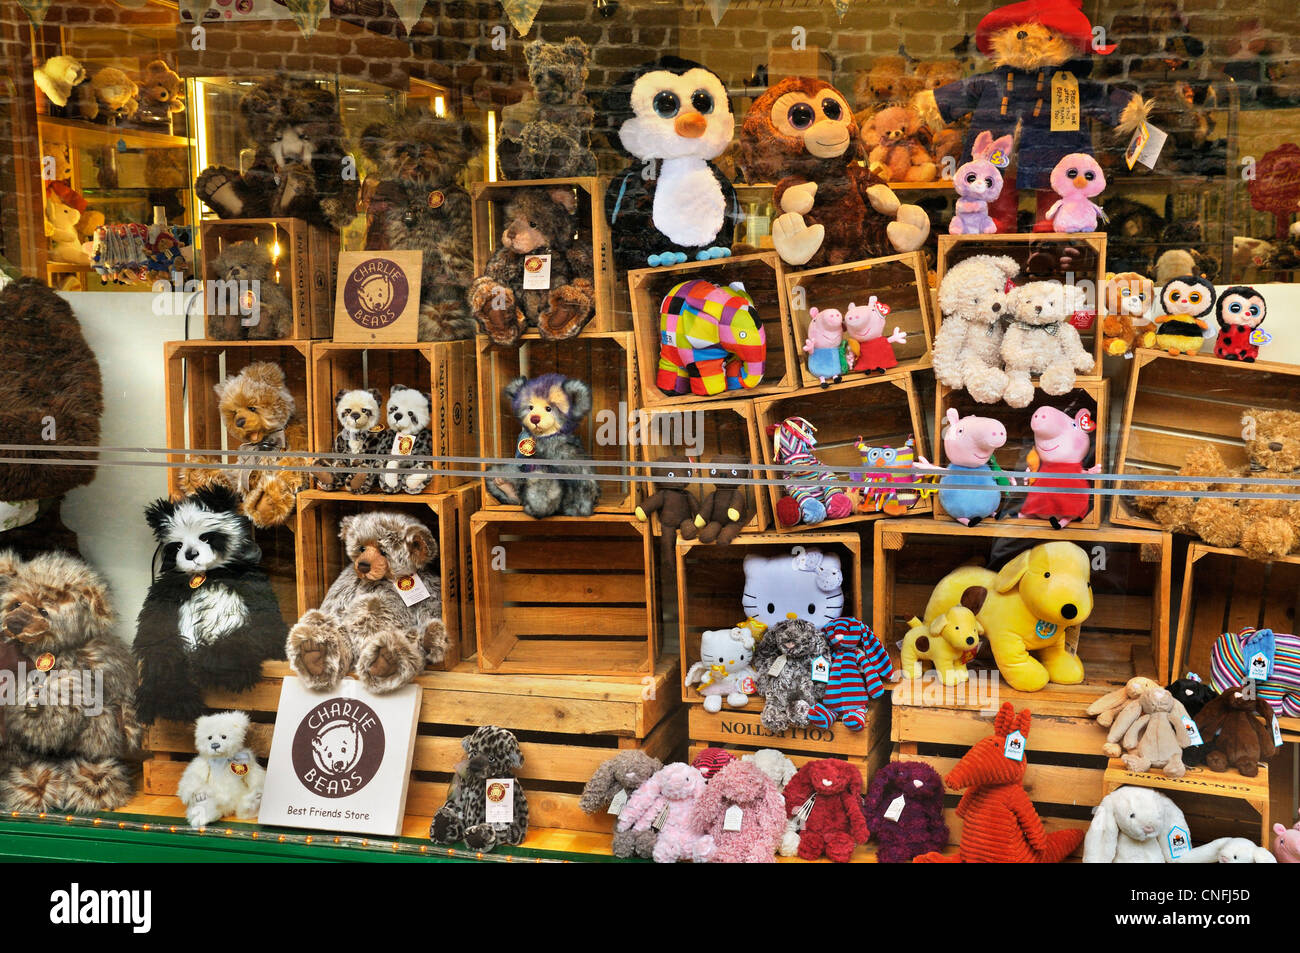 Cuddly toys in shop window display - Stock Image